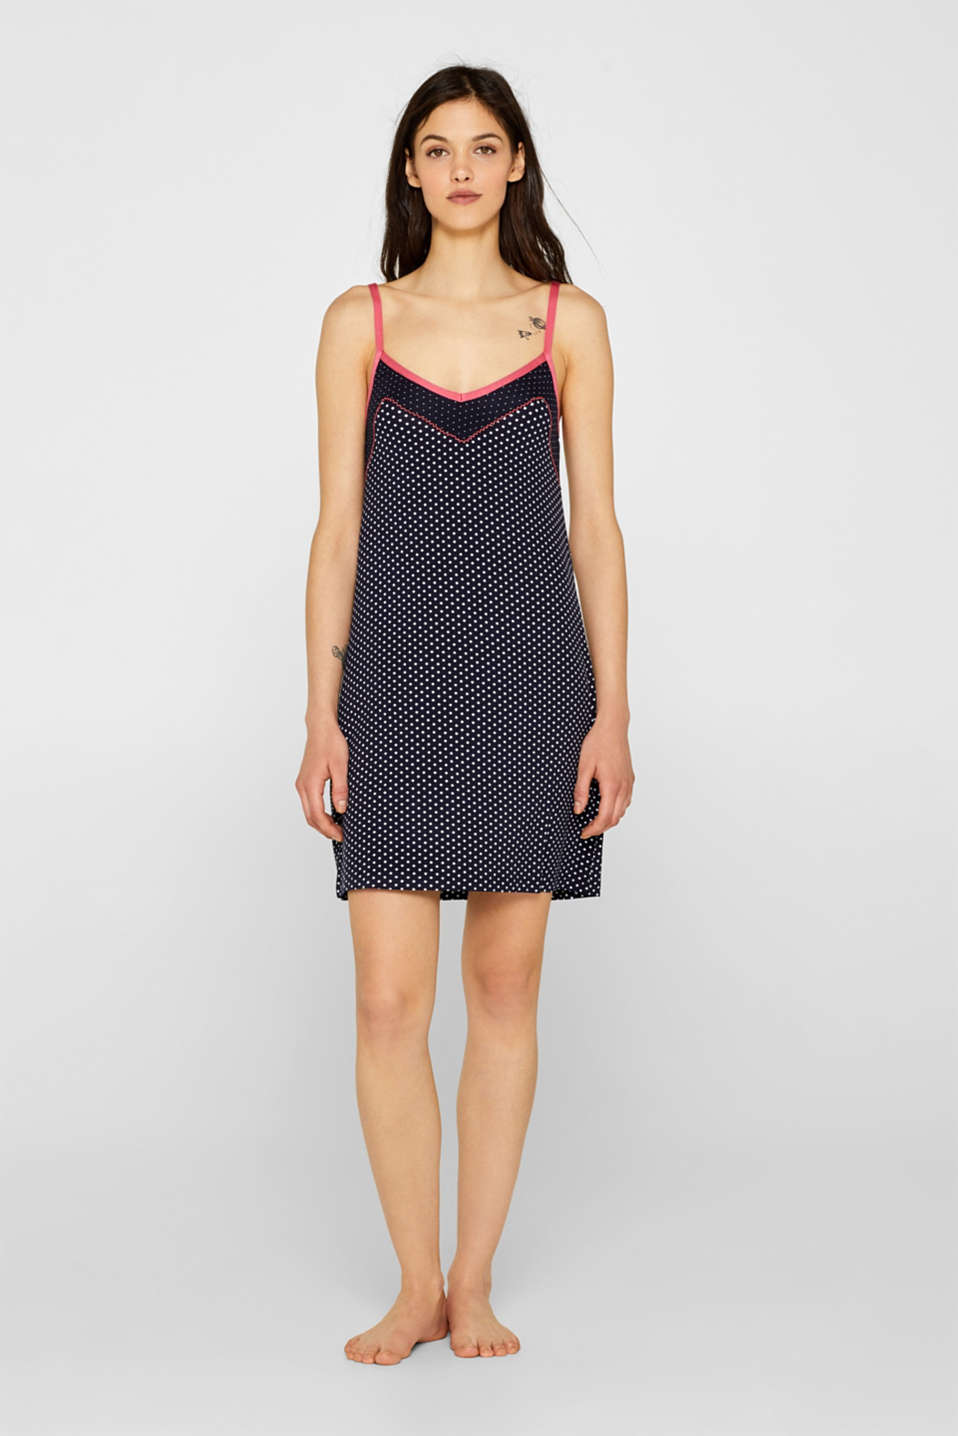 Esprit - Stretch jersey chemise with two kinds of polka dots